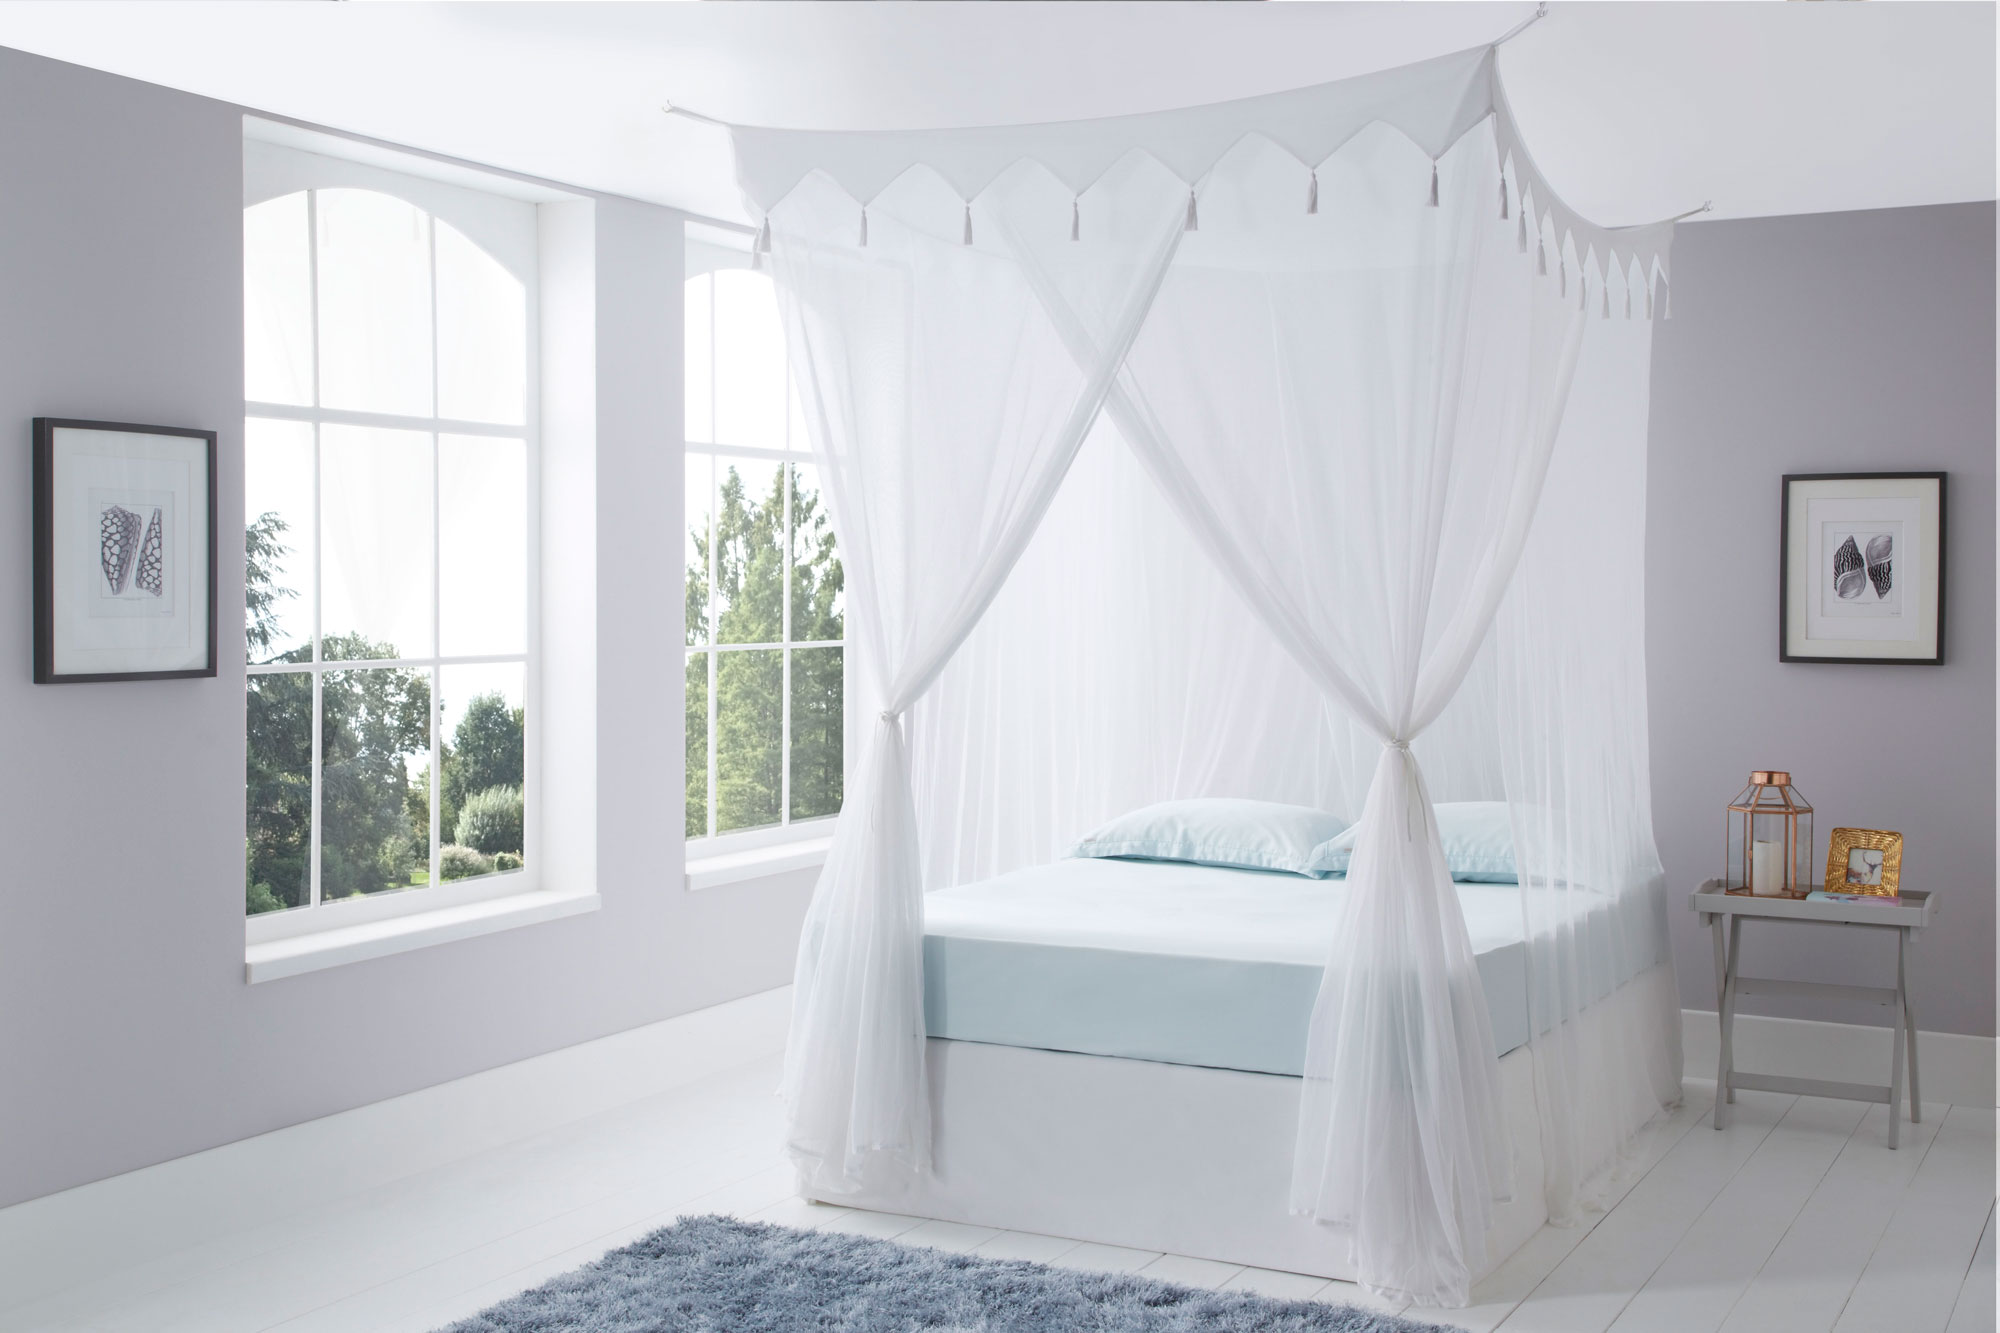 Decorative Bed Canopy Decorative Box Cotton Mosquito Net King Size Mosquito